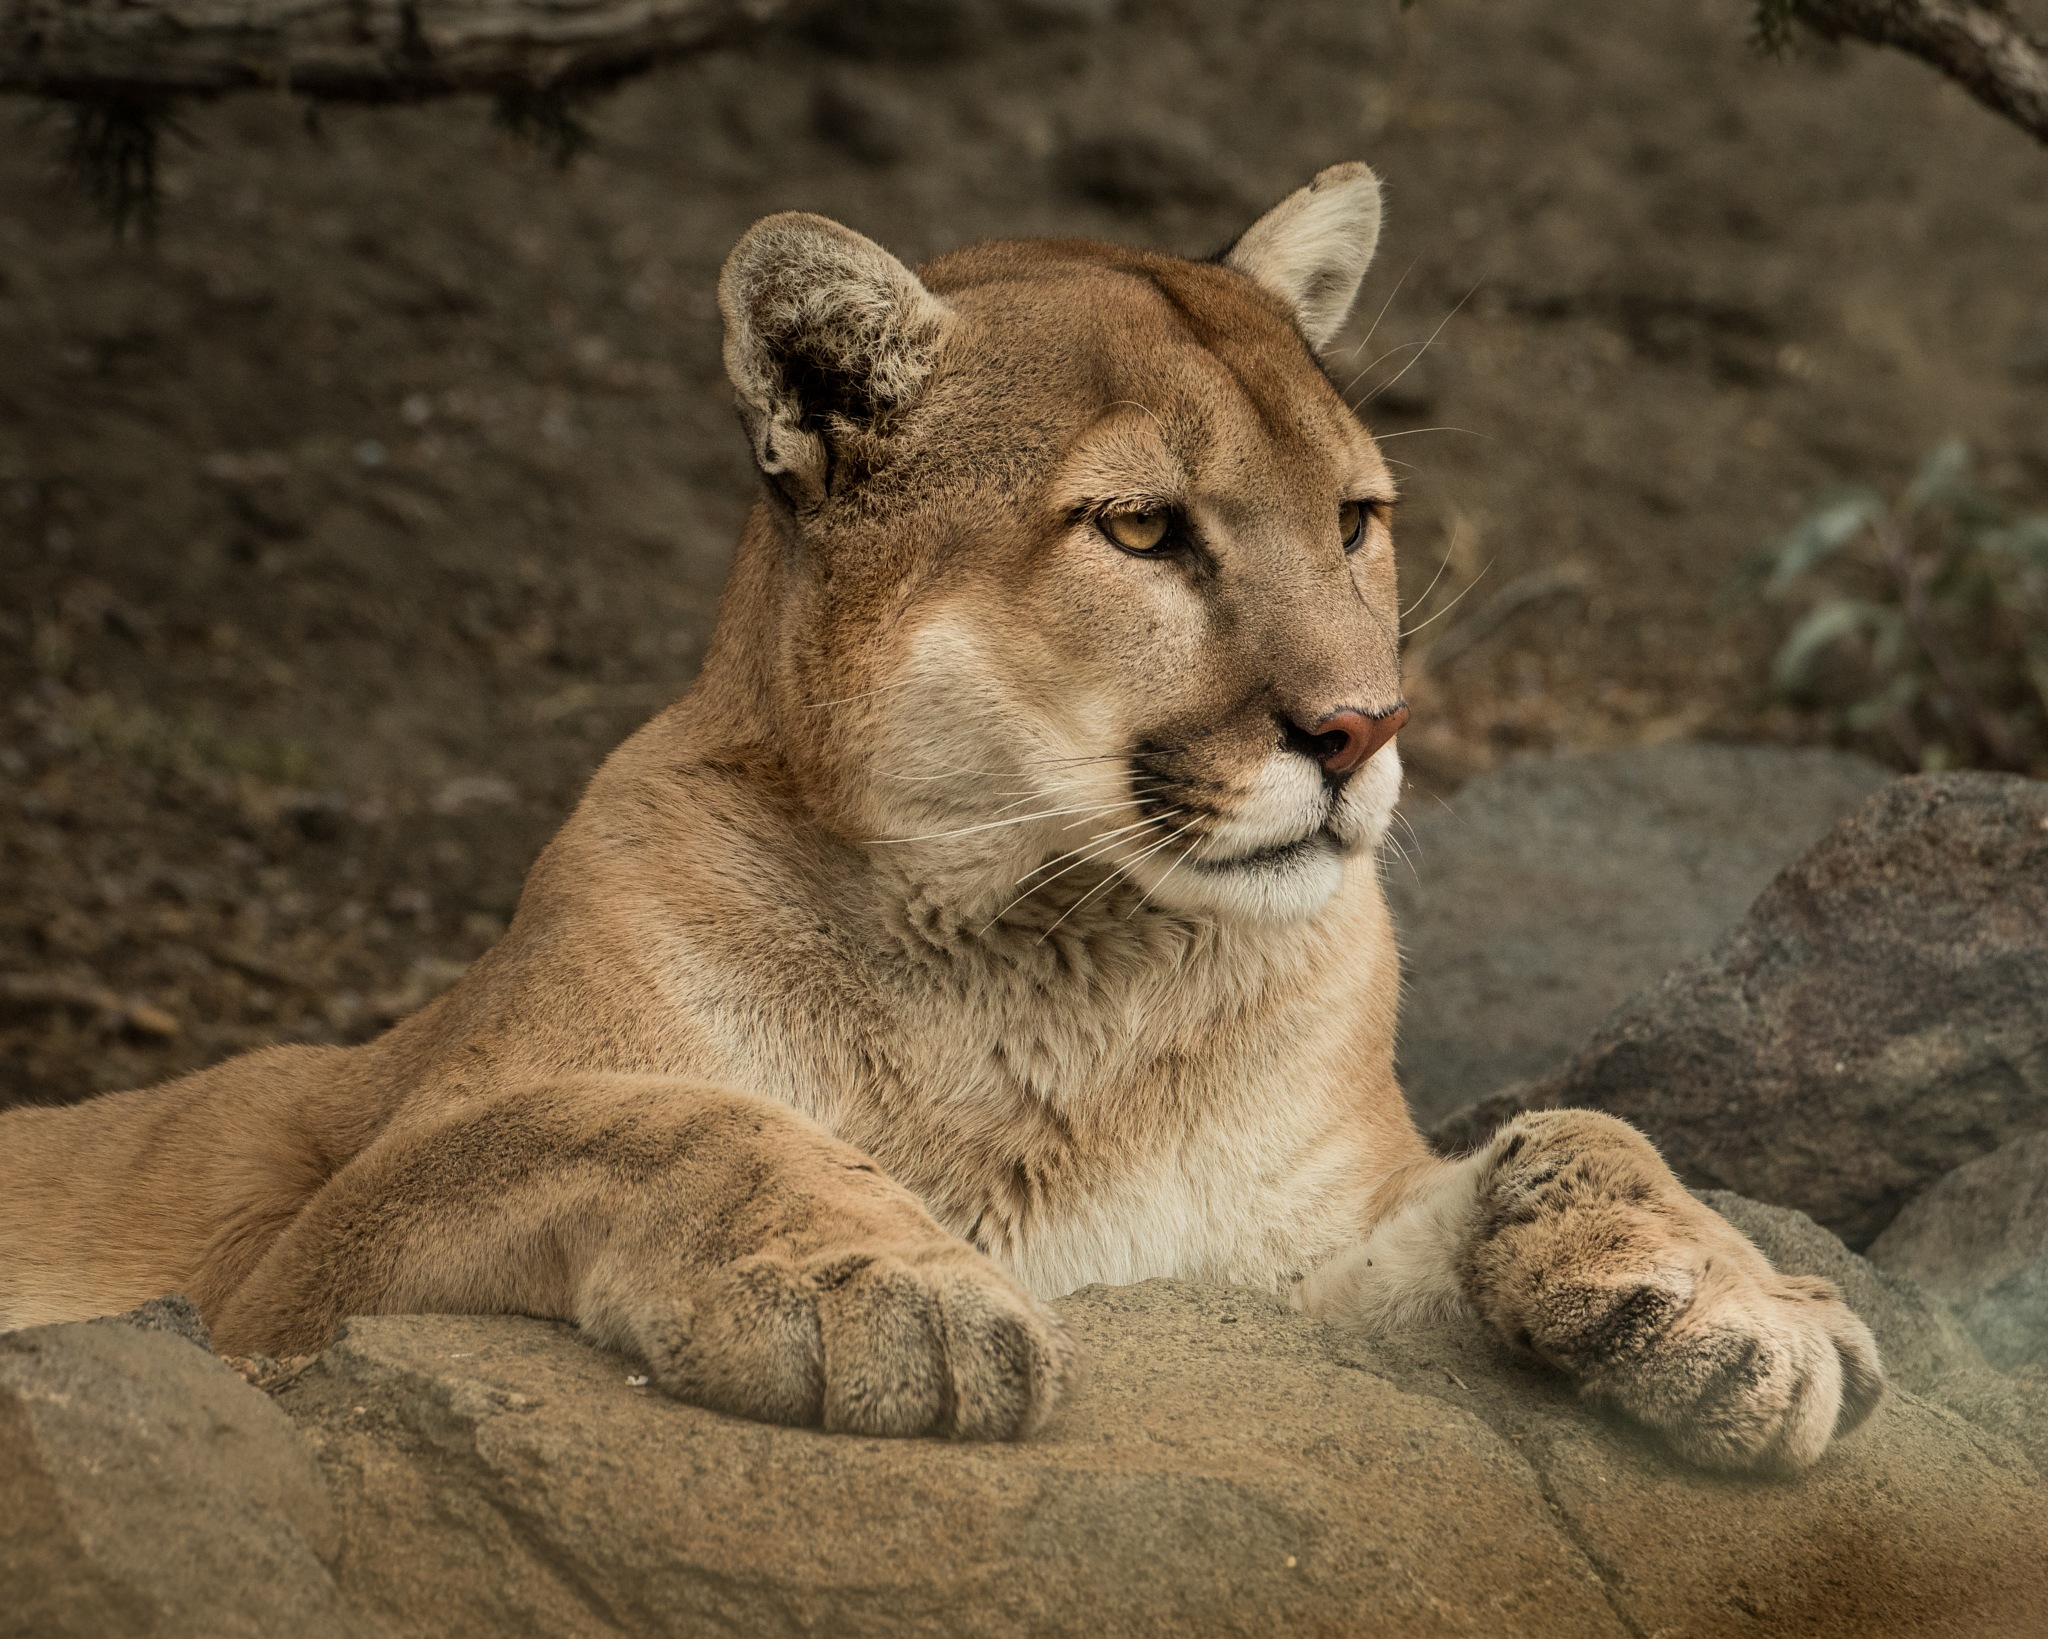 Mountain Lion 3307 by Janis Knight / Home Planet Images